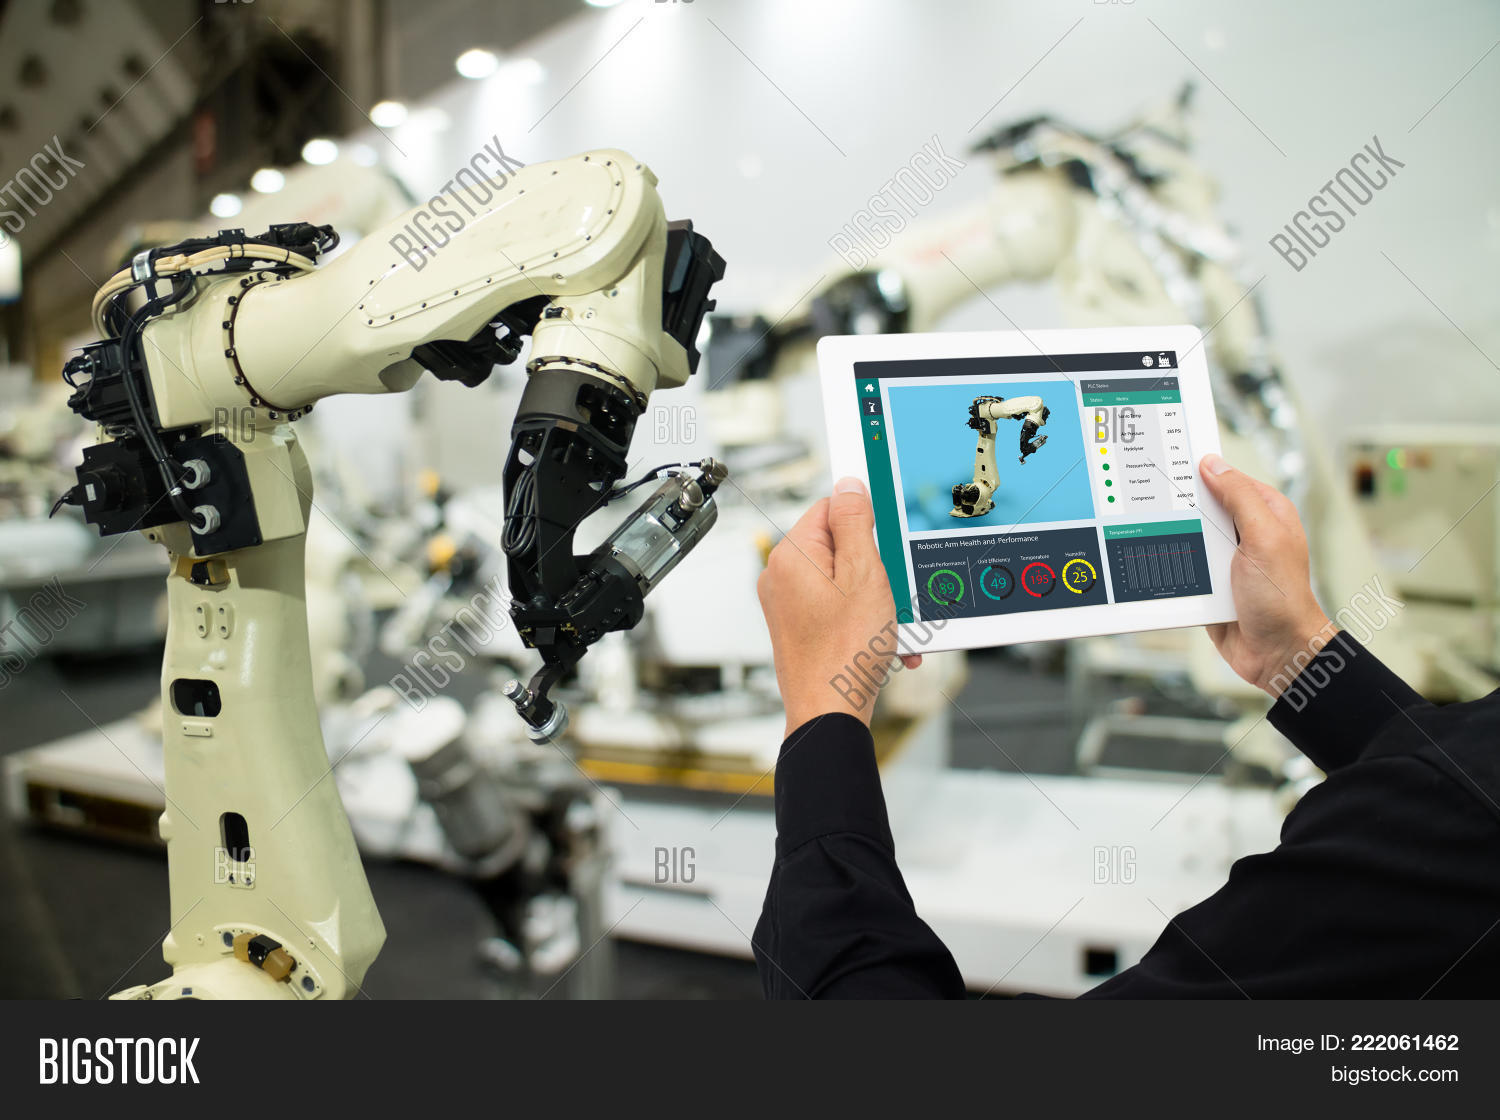 4.0,4th,ai,application,arm,artificial,auto,automate,automation,background,communication,concept,deep,digital,electronics,engineer,engineering,factory,future,hand,industrial,industry,intelligence,internet,iot,learning,line,machine,maintenance,man,management,manufacturing,monitoring,operation,process,production,reality,robot,robotic,smart,software,system,tablet,tech,technology,tool,work